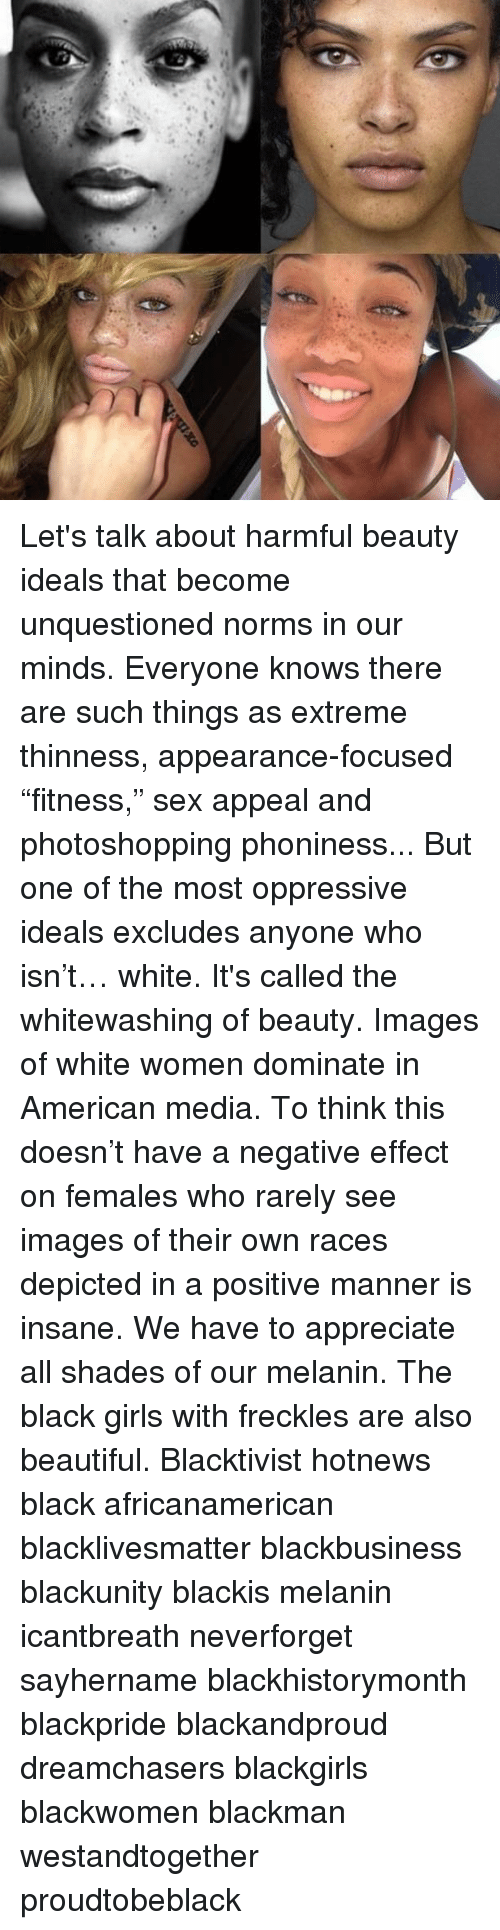 "Memes, 🤖, and Media: Let's talk about harmful beauty ideals that become unquestioned norms in our minds. Everyone knows there are such things as extreme thinness, appearance-focused ""fitness,"" sex appeal and photoshopping phoniness... But one of the most oppressive ideals excludes anyone who isn't… white. It's called the whitewashing of beauty. Images of white women dominate in American media. To think this doesn't have a negative effect on females who rarely see images of their own races depicted in a positive manner is insane. We have to appreciate all shades of our melanin. The black girls with freckles are also beautiful. Blacktivist hotnews black africanamerican blacklivesmatter blackbusiness blackunity blackis melanin icantbreath neverforget sayhername blackhistorymonth blackpride blackandproud dreamchasers blackgirls blackwomen blackman westandtogether proudtobeblack"